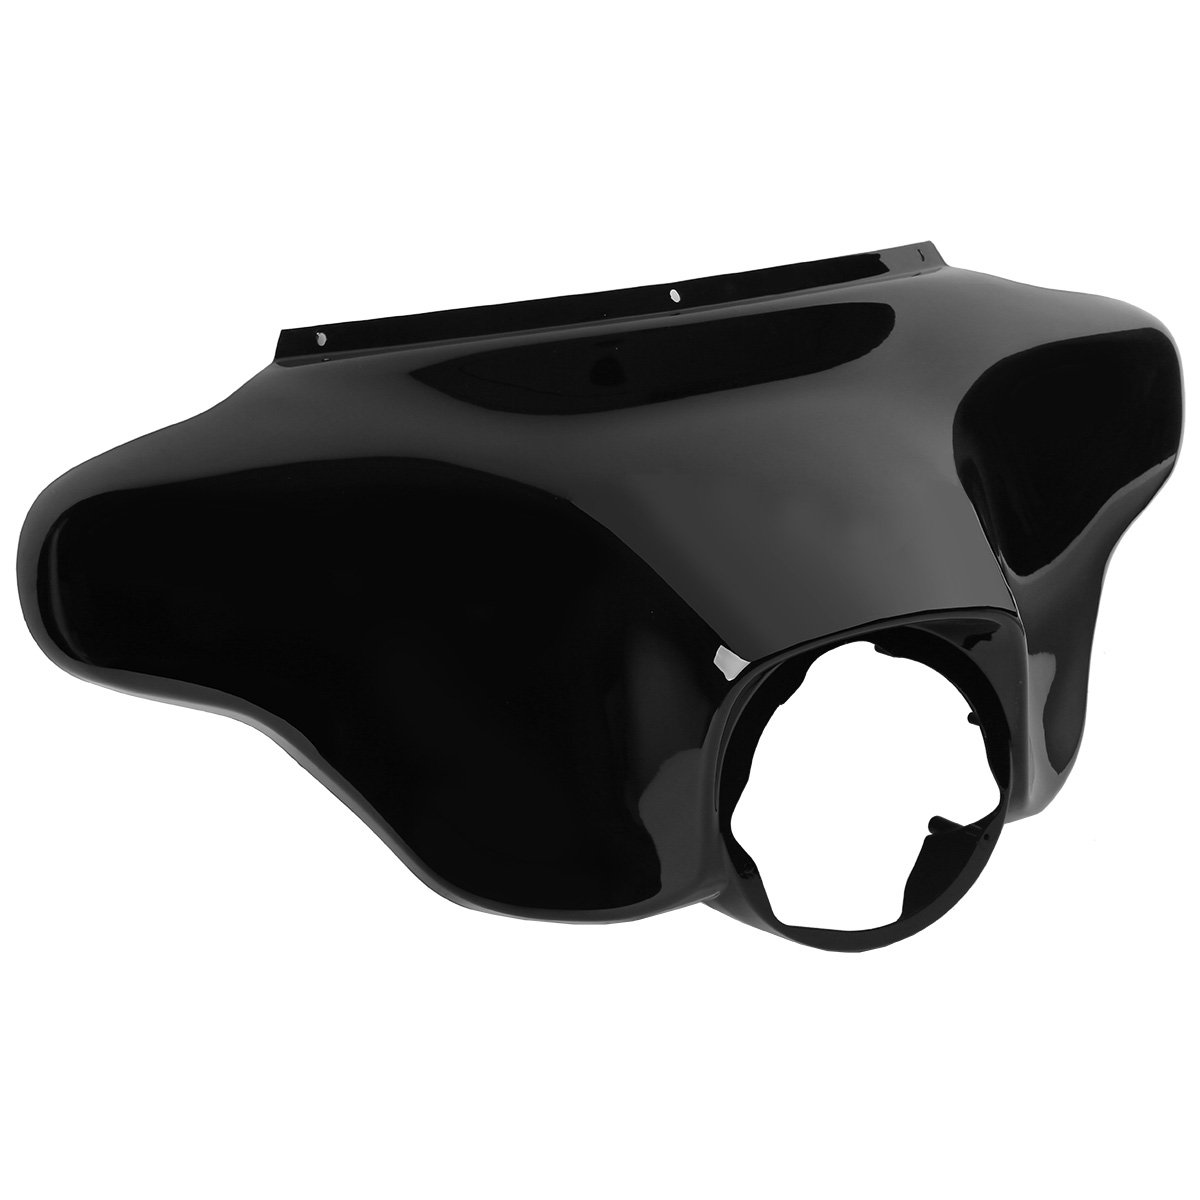 XMT-MOTO Vivid Black Front Batwing Upper Outer Fairing For Harley Touring Models 1996-2013(OEM Part No. 58236-96)